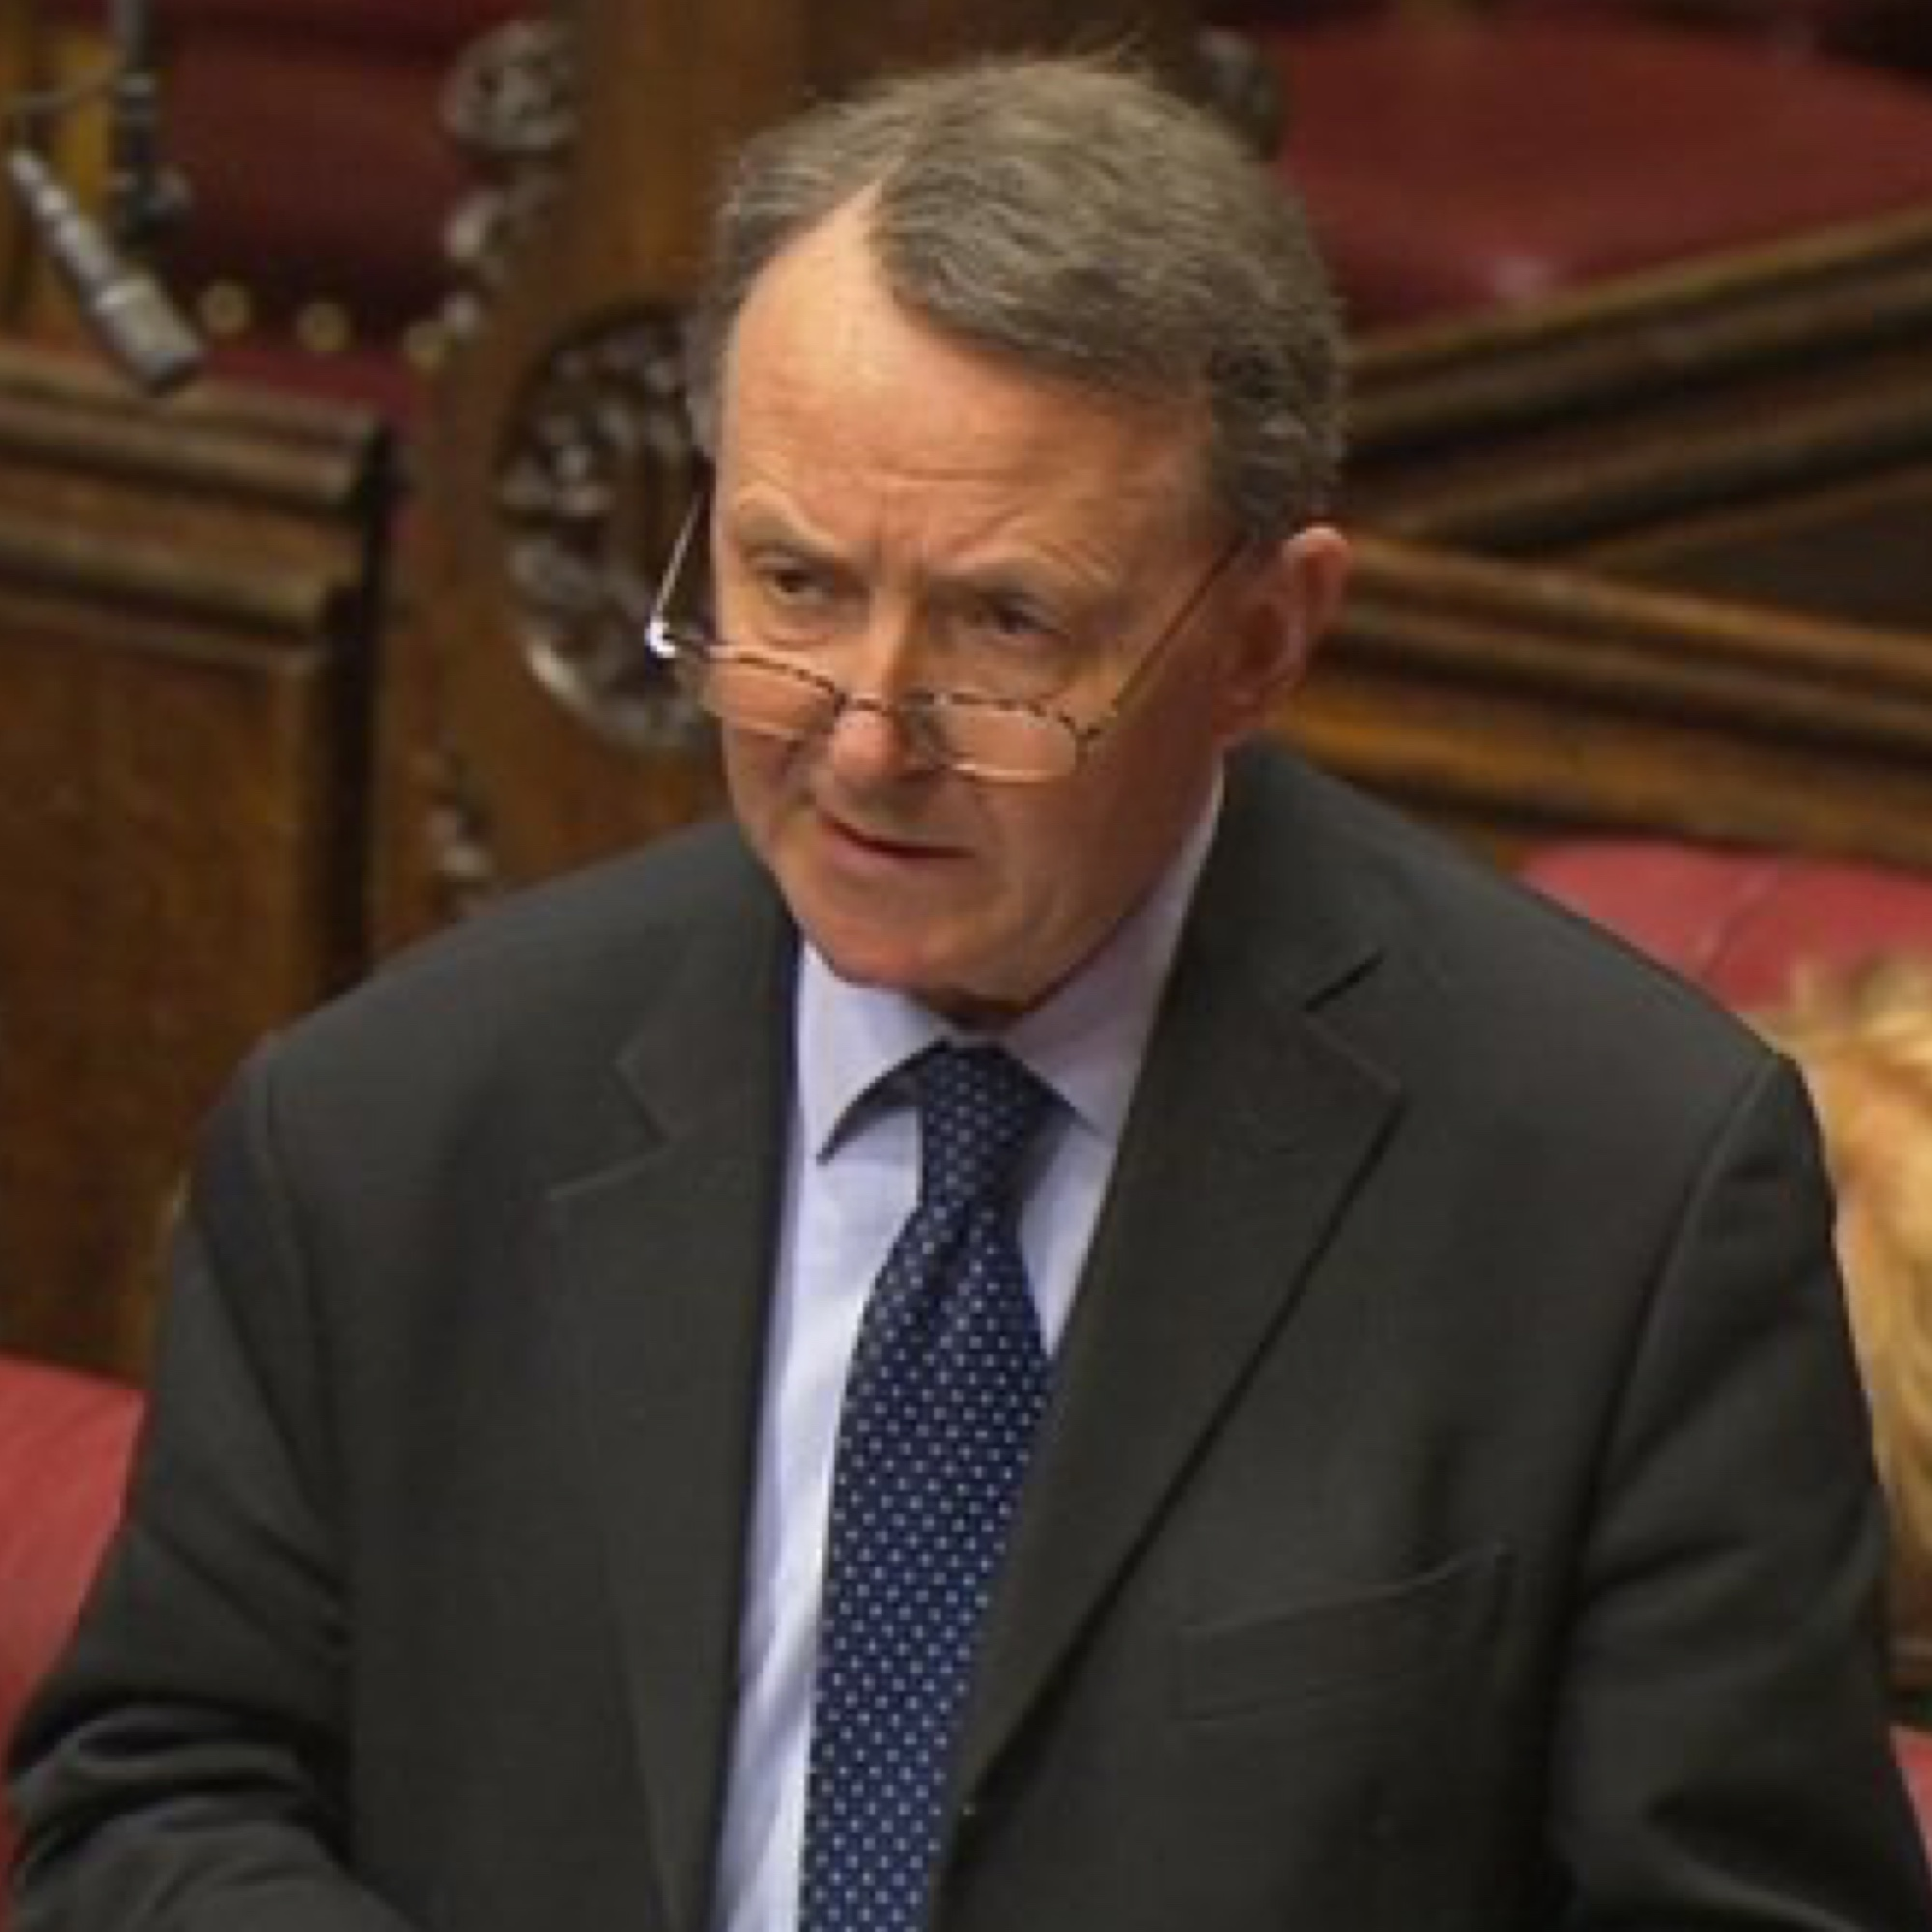 Alton speaking in the House of Lords